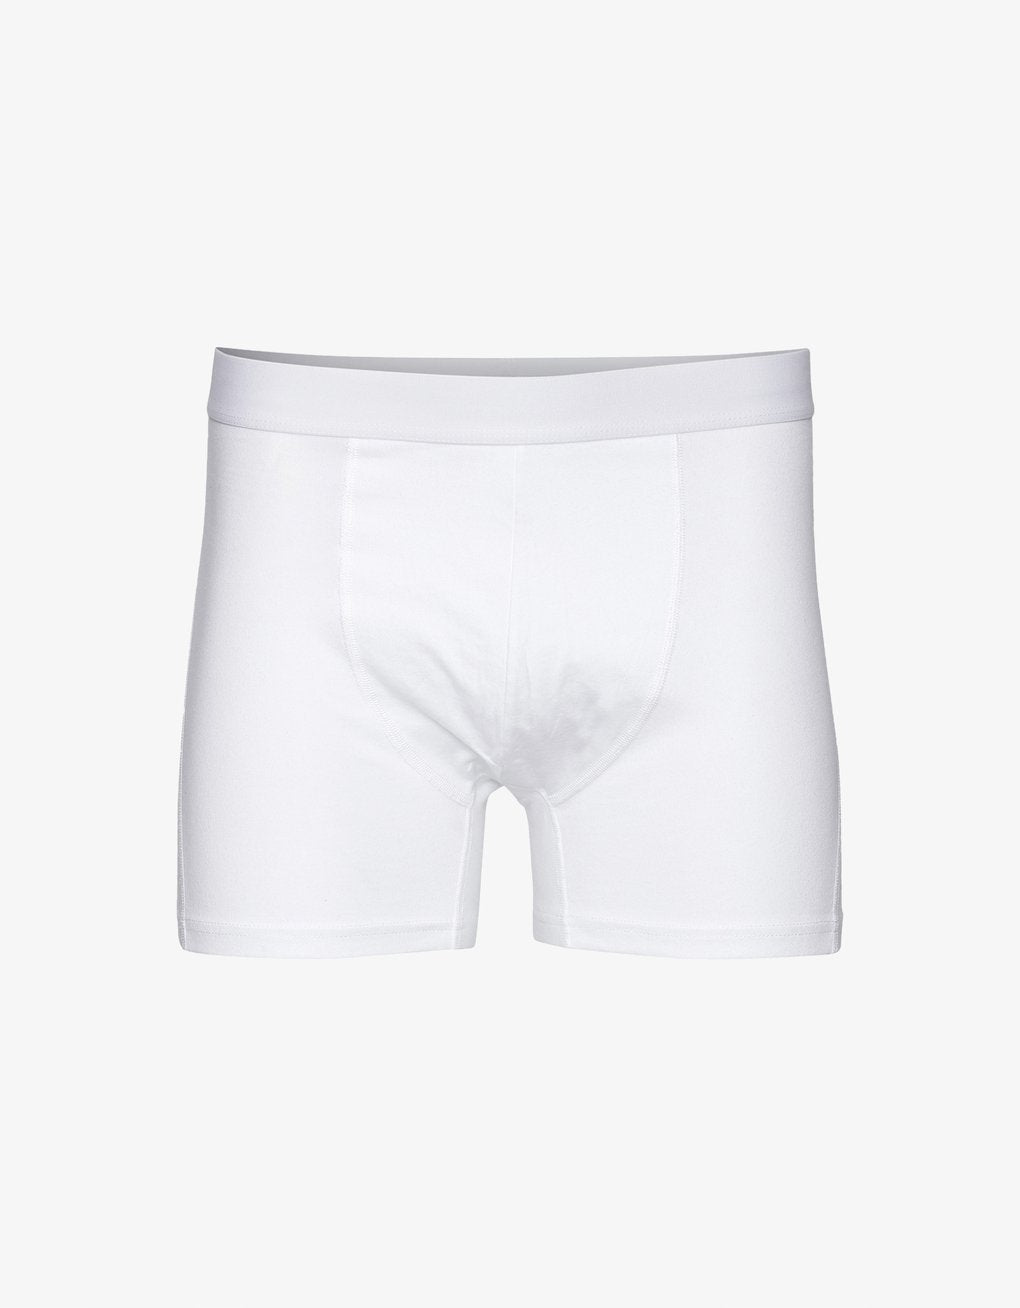 COLORFUL STANDARD | Organic Boxershorts Briefs | Optical White - LONDØNWORKS